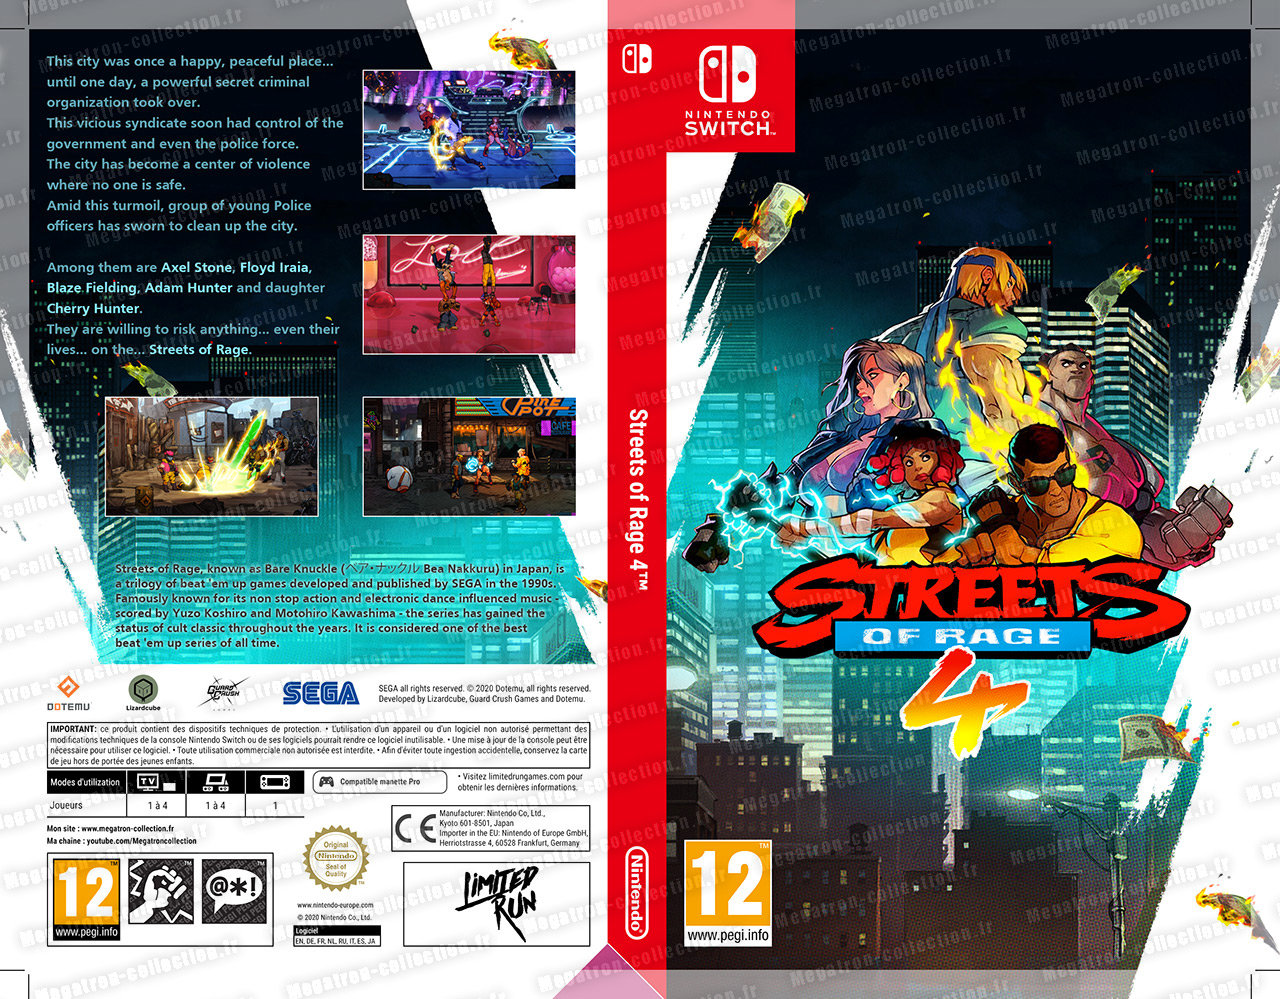 streets of rage 4 - Page 2 200426122020861172